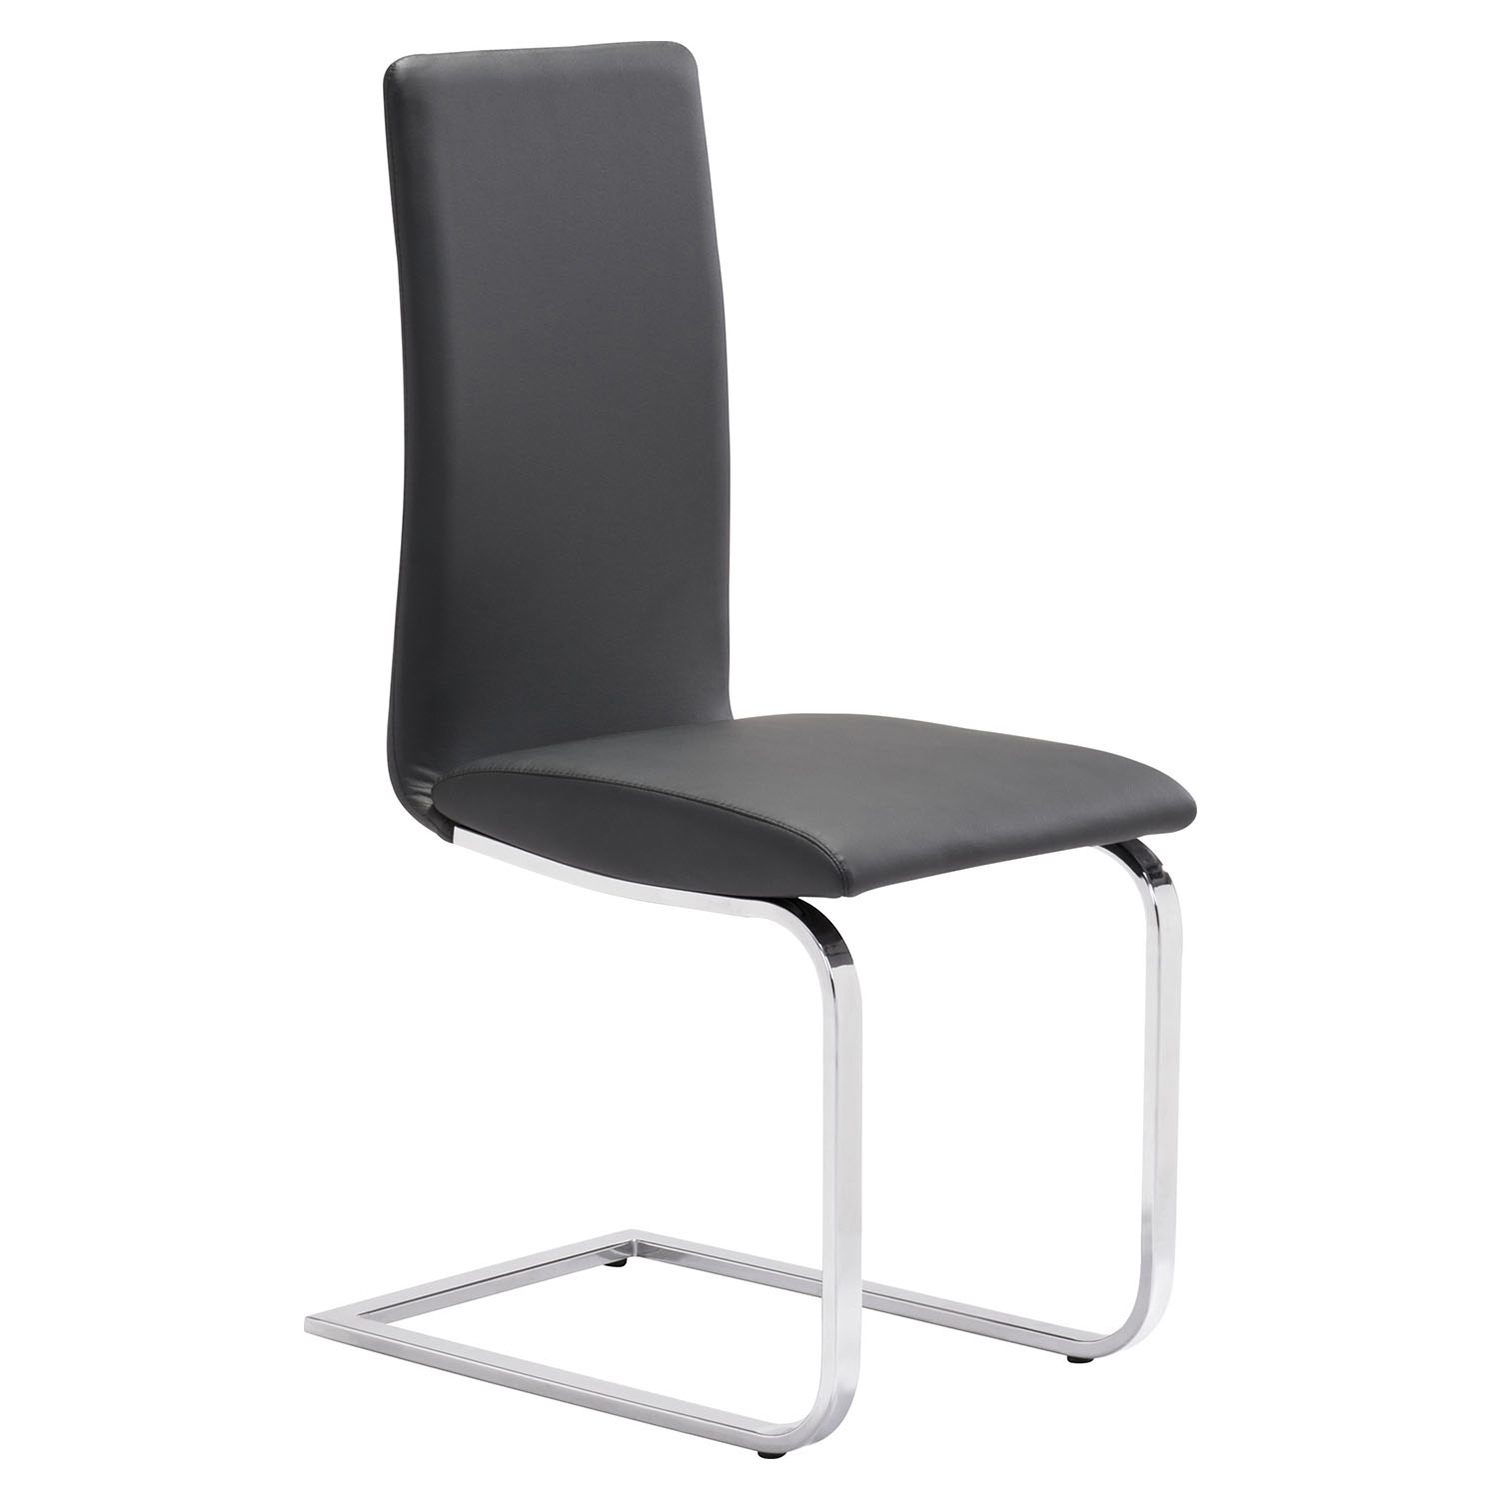 Lasalle Dining Chair - Black